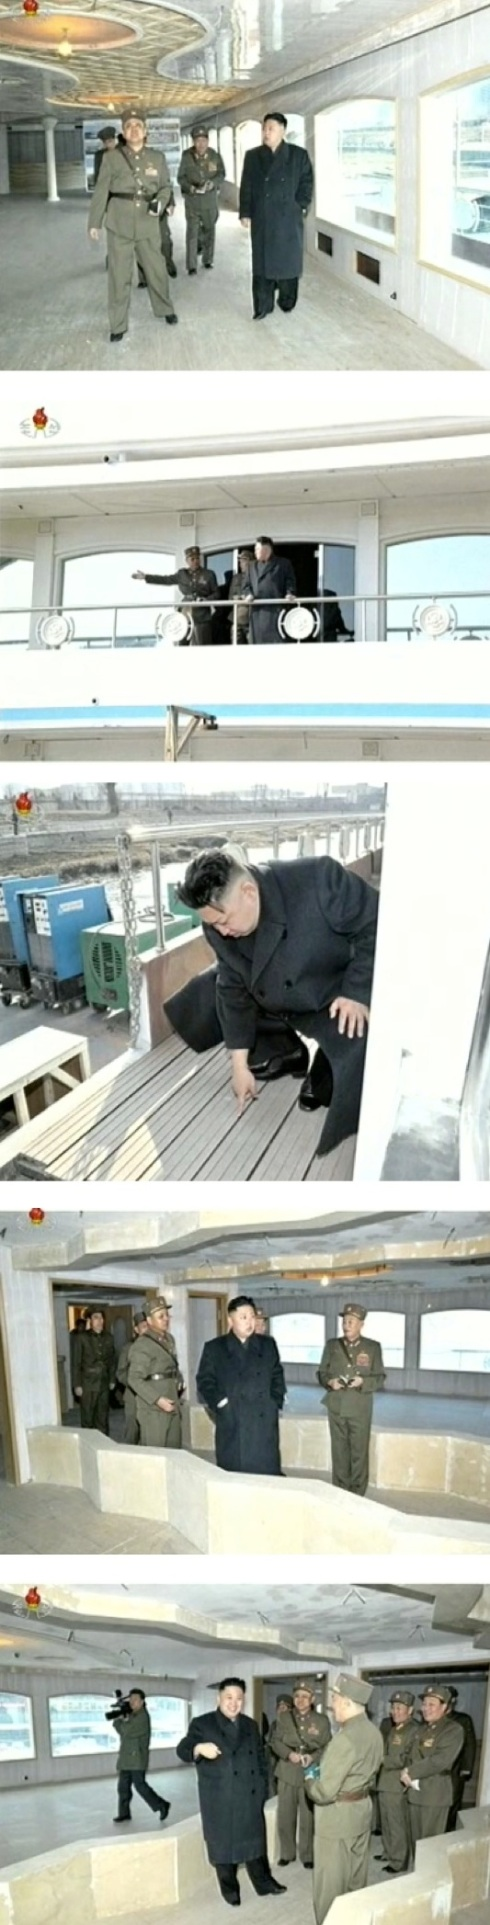 Kim Jong Un tours the Taedonggang Restaurant Boat under construction by KPA personnel on 24 March 2013 (Photos: KCTV screengrabs)